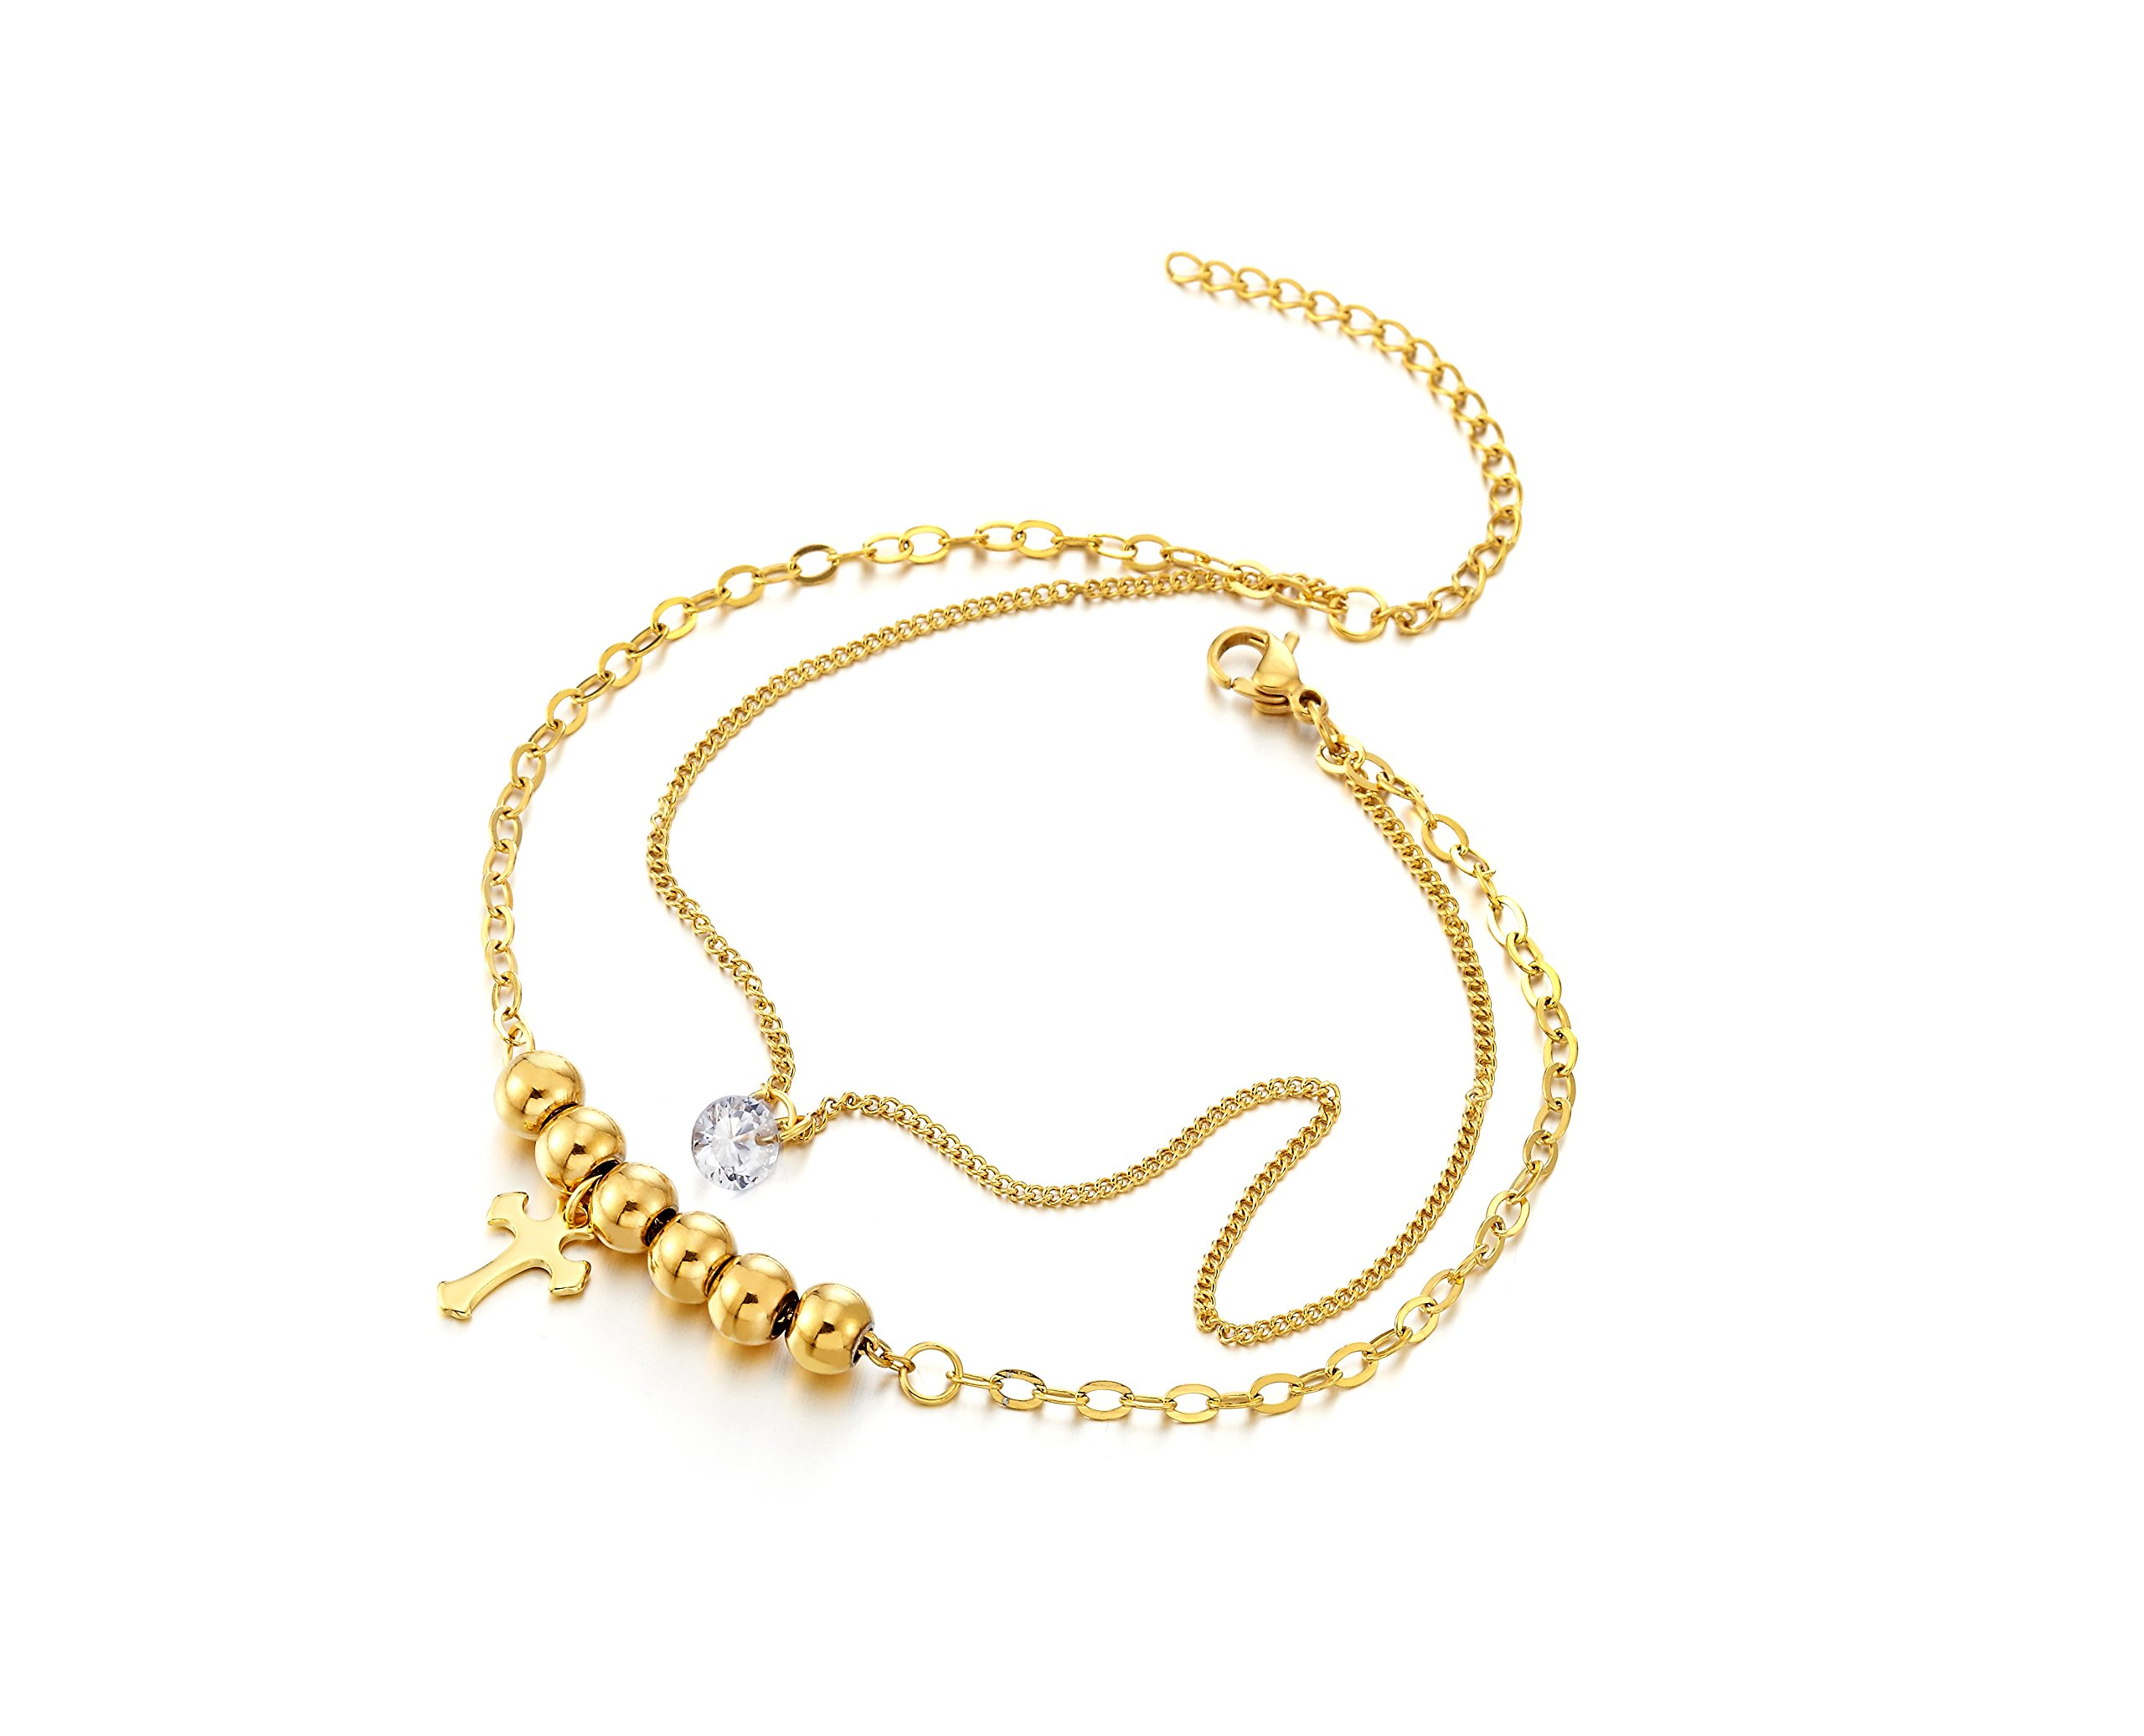 Stainless Steel Gold Color Double Chain Anklet Bracelet with Beads and Dangling Charms of Cross by COOLSTEELANDBEYOND (Image #3)